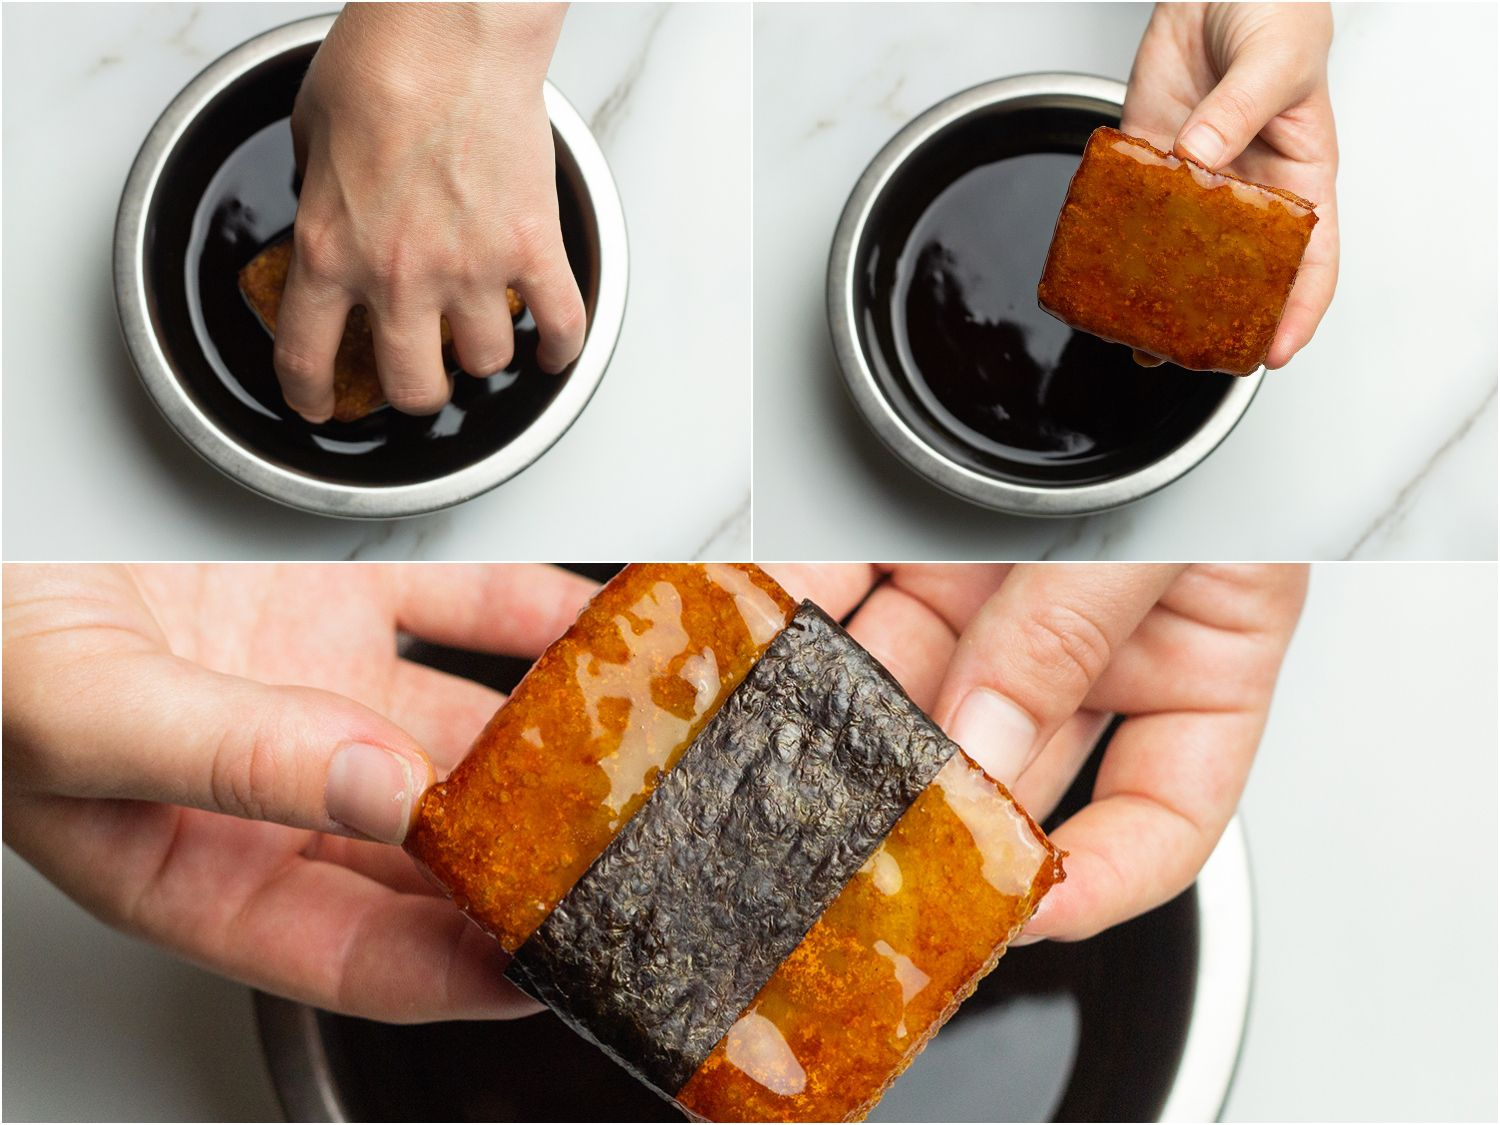 Collage showing steps of dipping potato mochi in soy glaze and then wrapping with nori strip